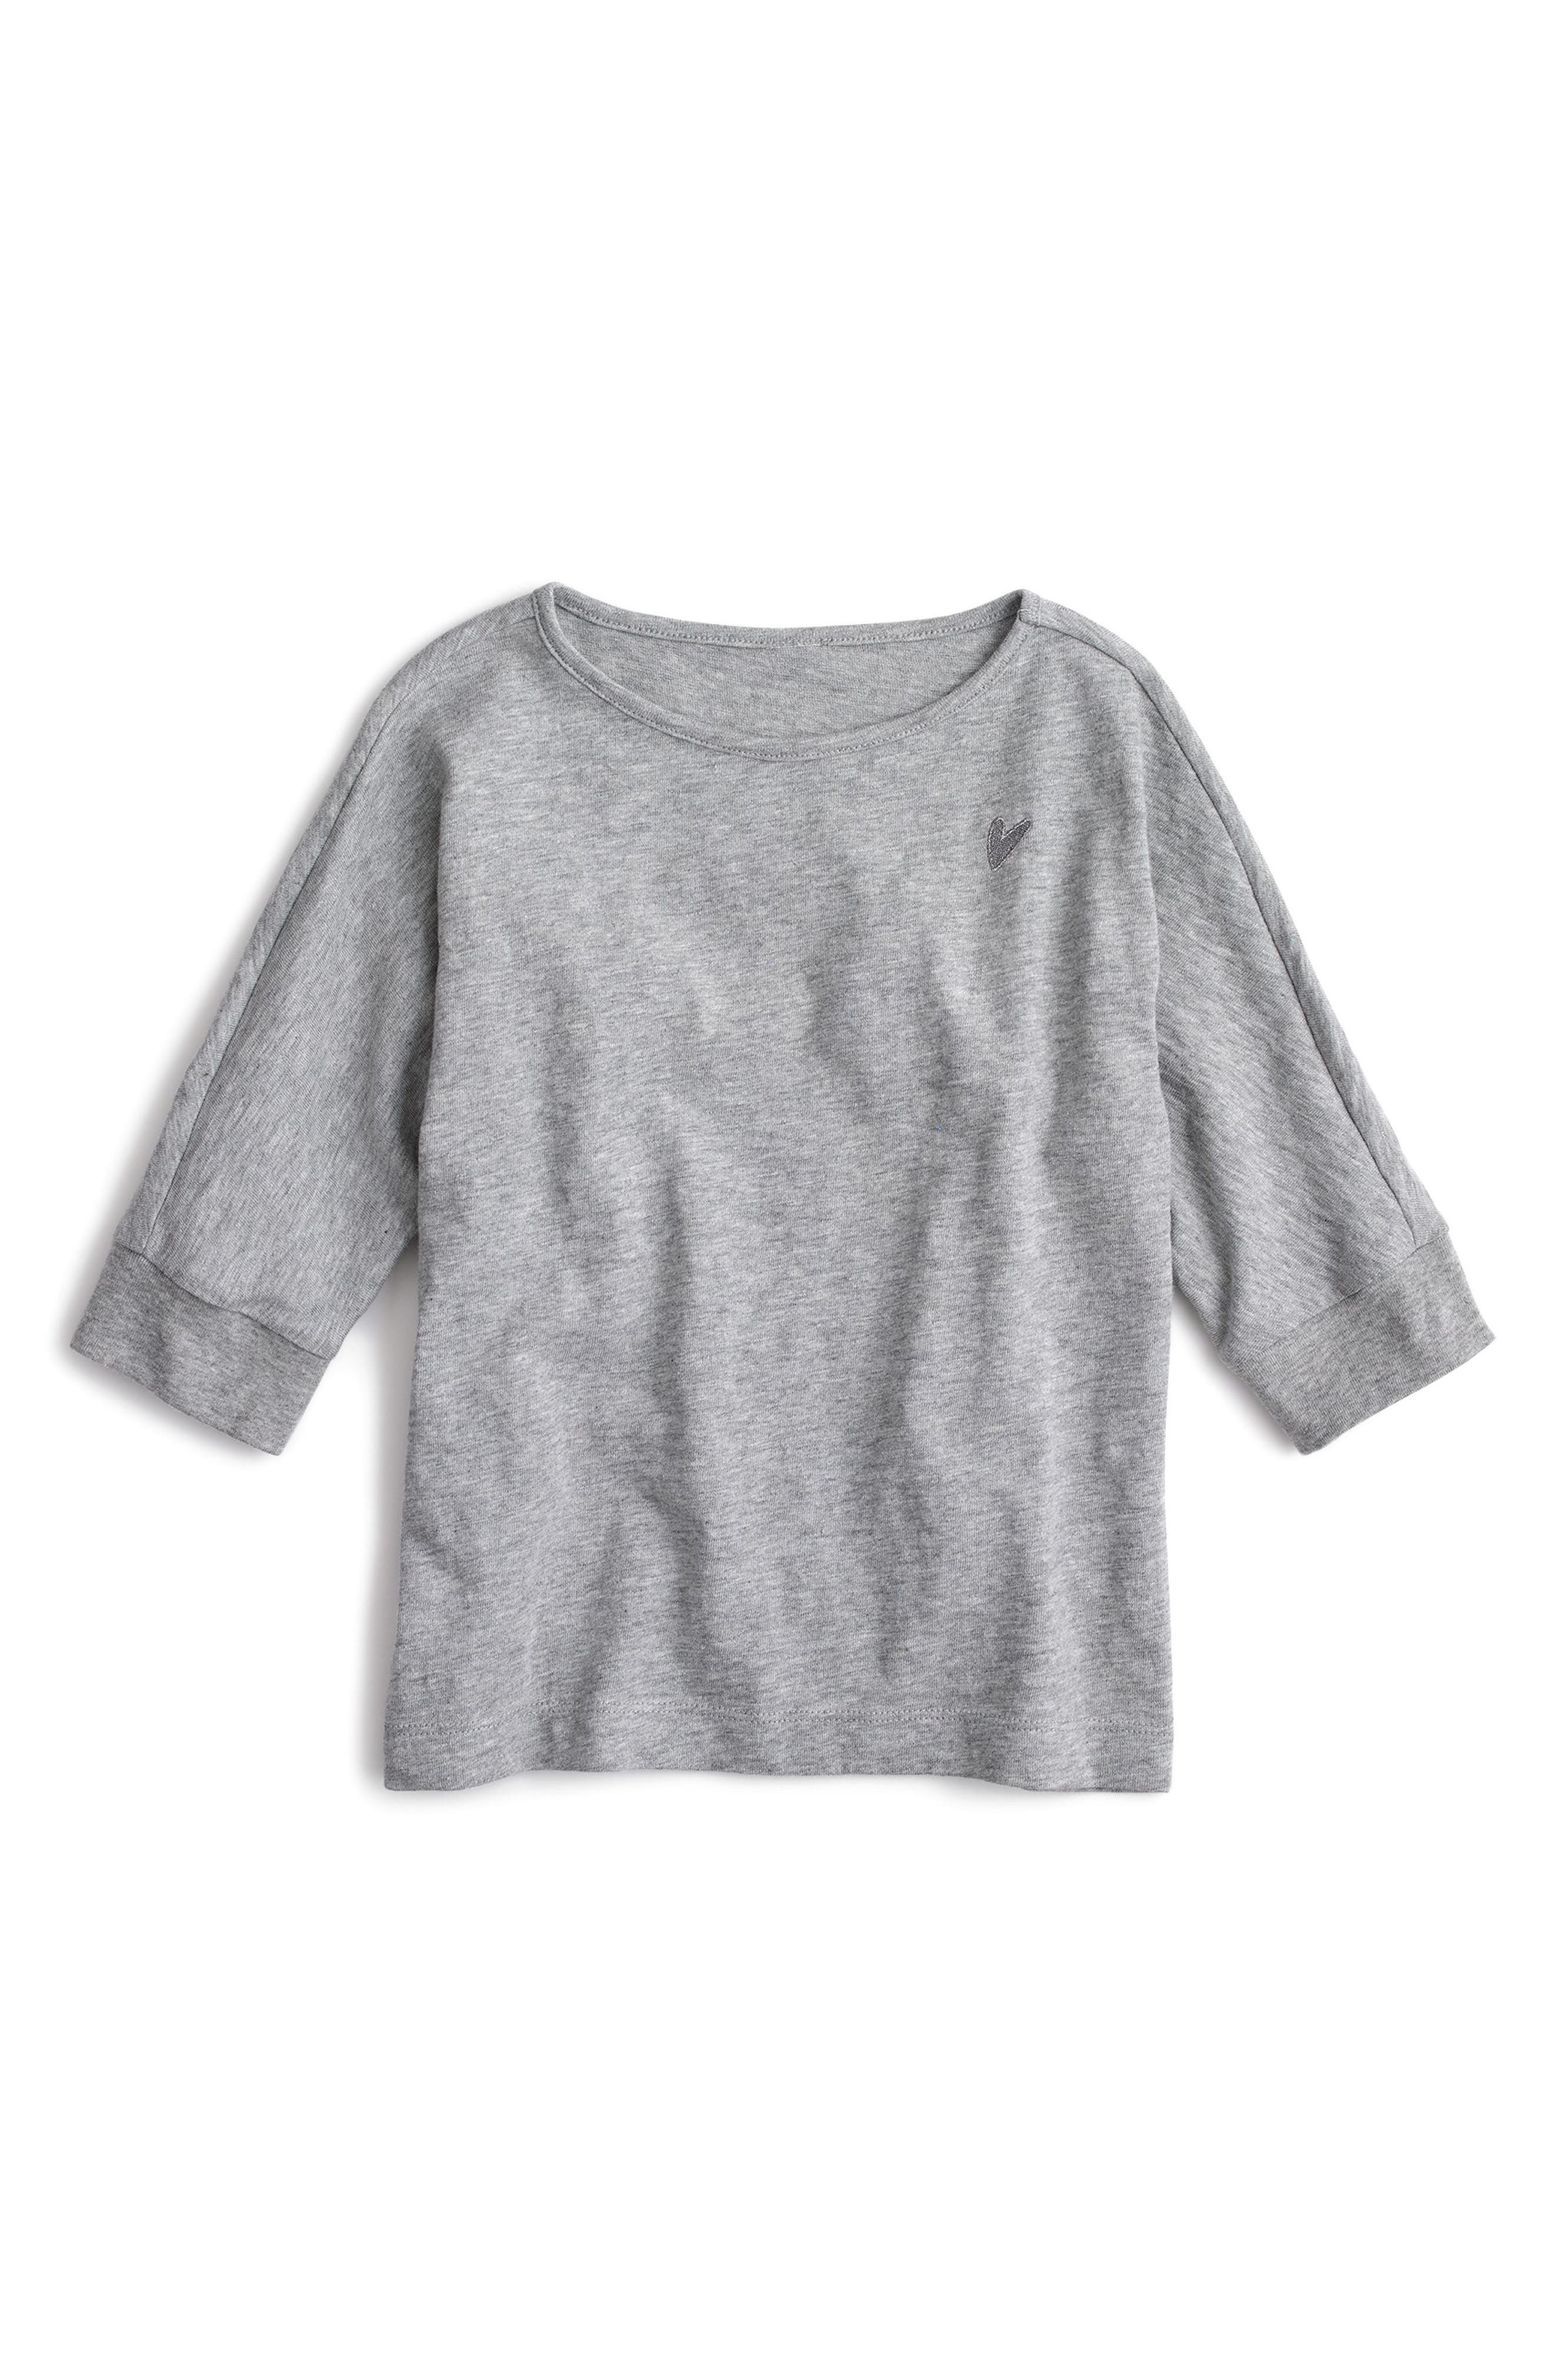 crewcuts by J.Crew Heart Appliqué Tee (Toddler Girls, Little Girls & Big Girls)